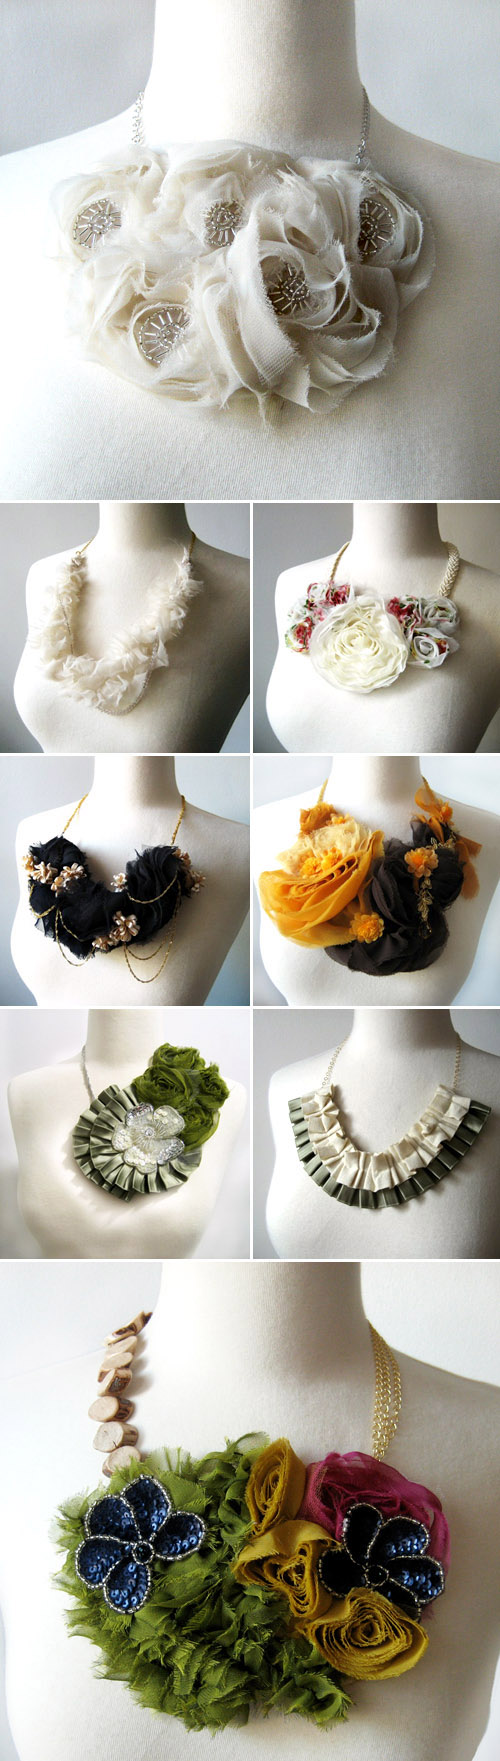 bold, stylish bridal neclaces with fabric flowers from PD Couture by Prismera Design